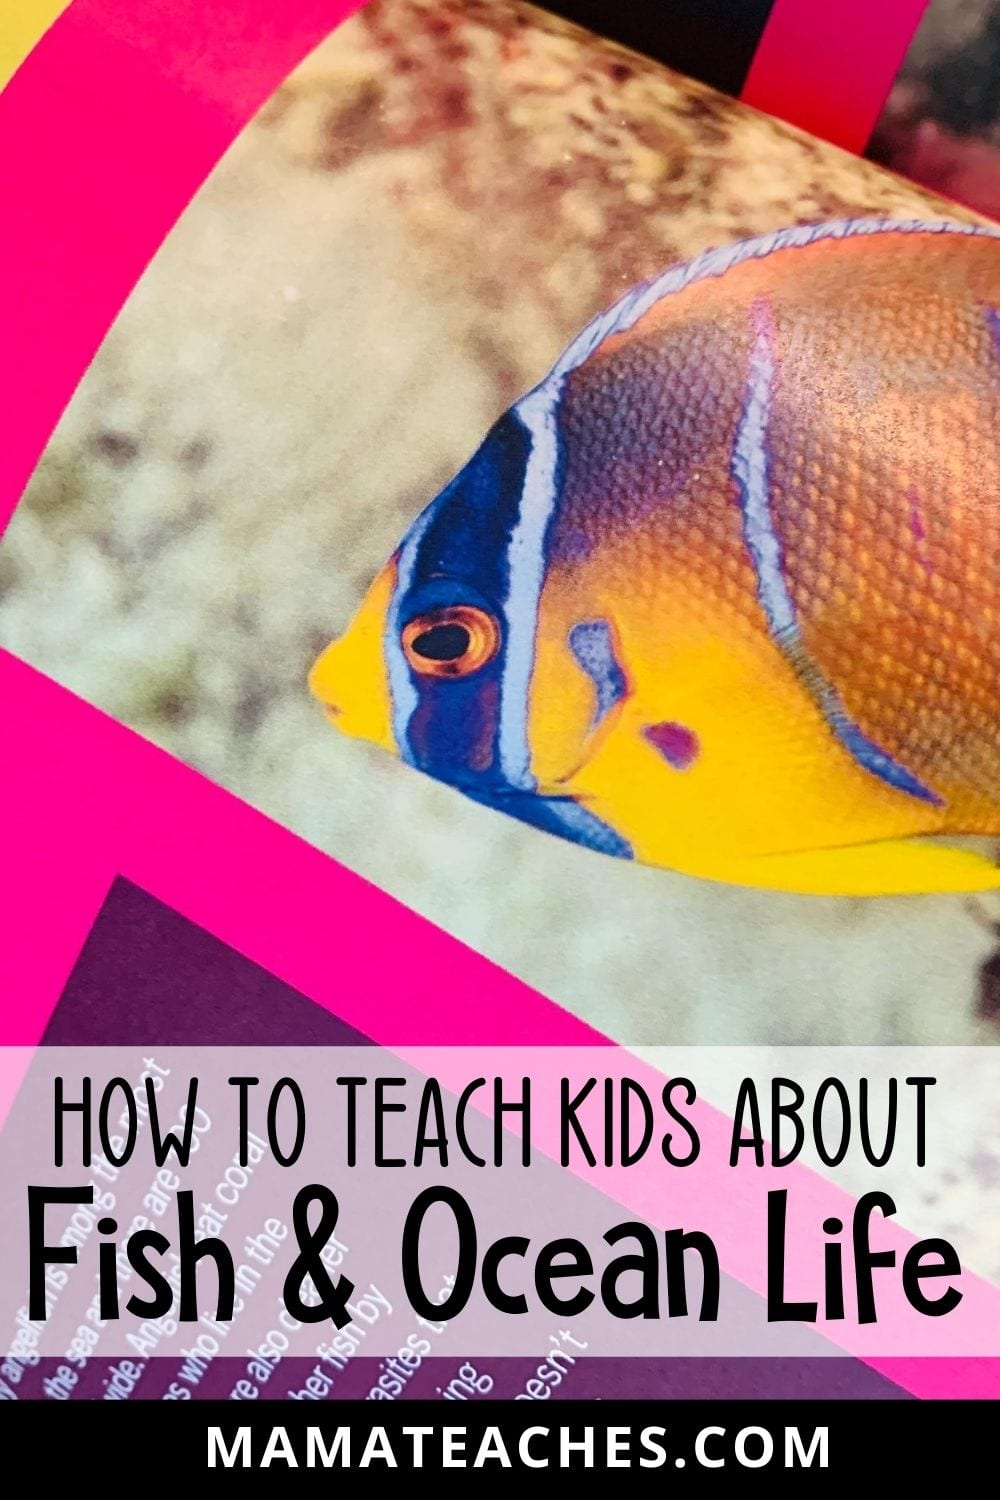 How to Teach Kids About Fish and Ocean Life - MamaTeaches.com